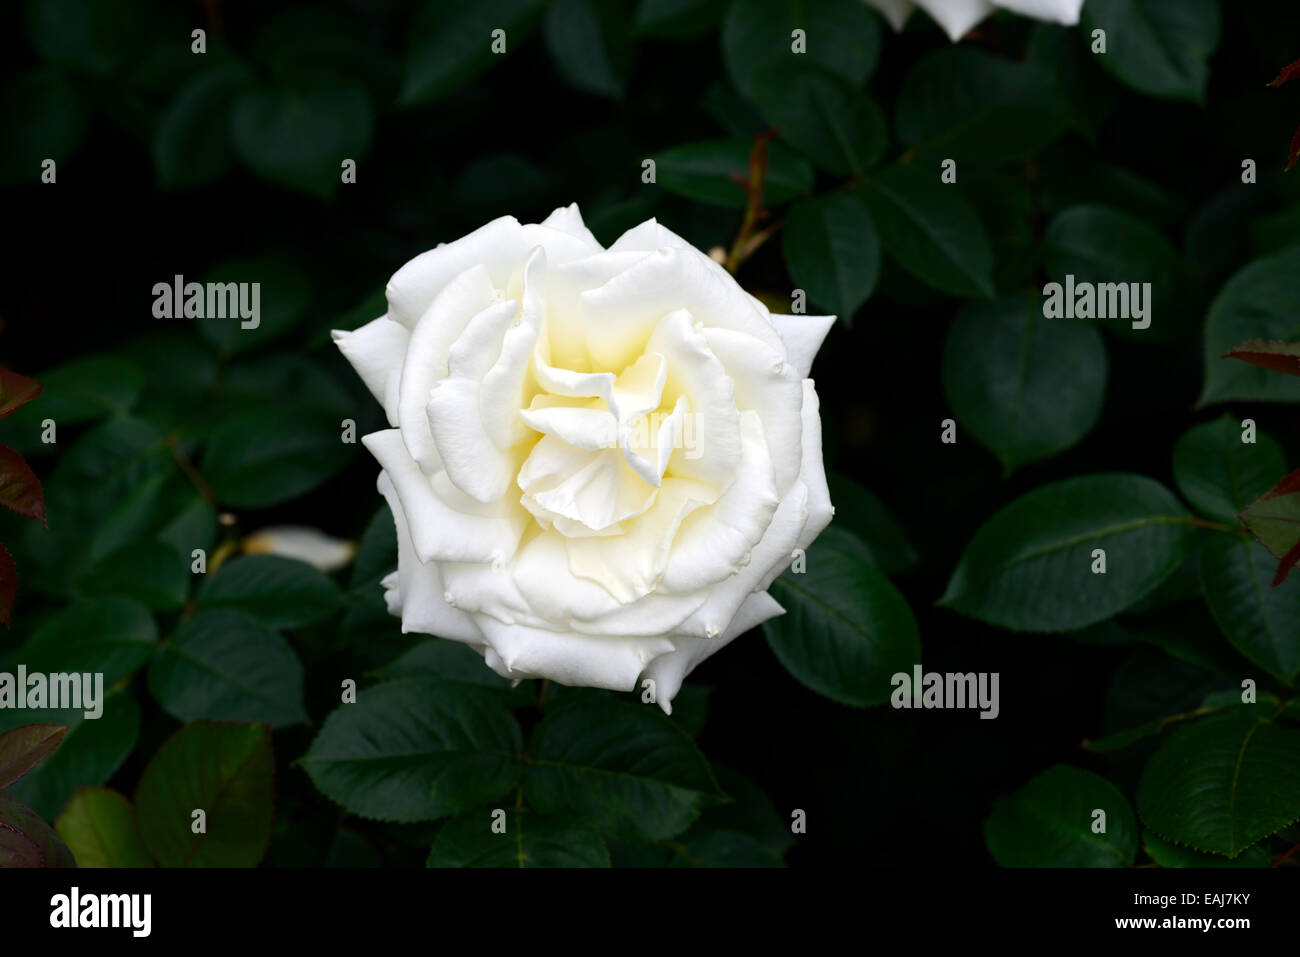 Rosa Ice Cream Rose Flower White Flowering Flowers Fragrant Scented